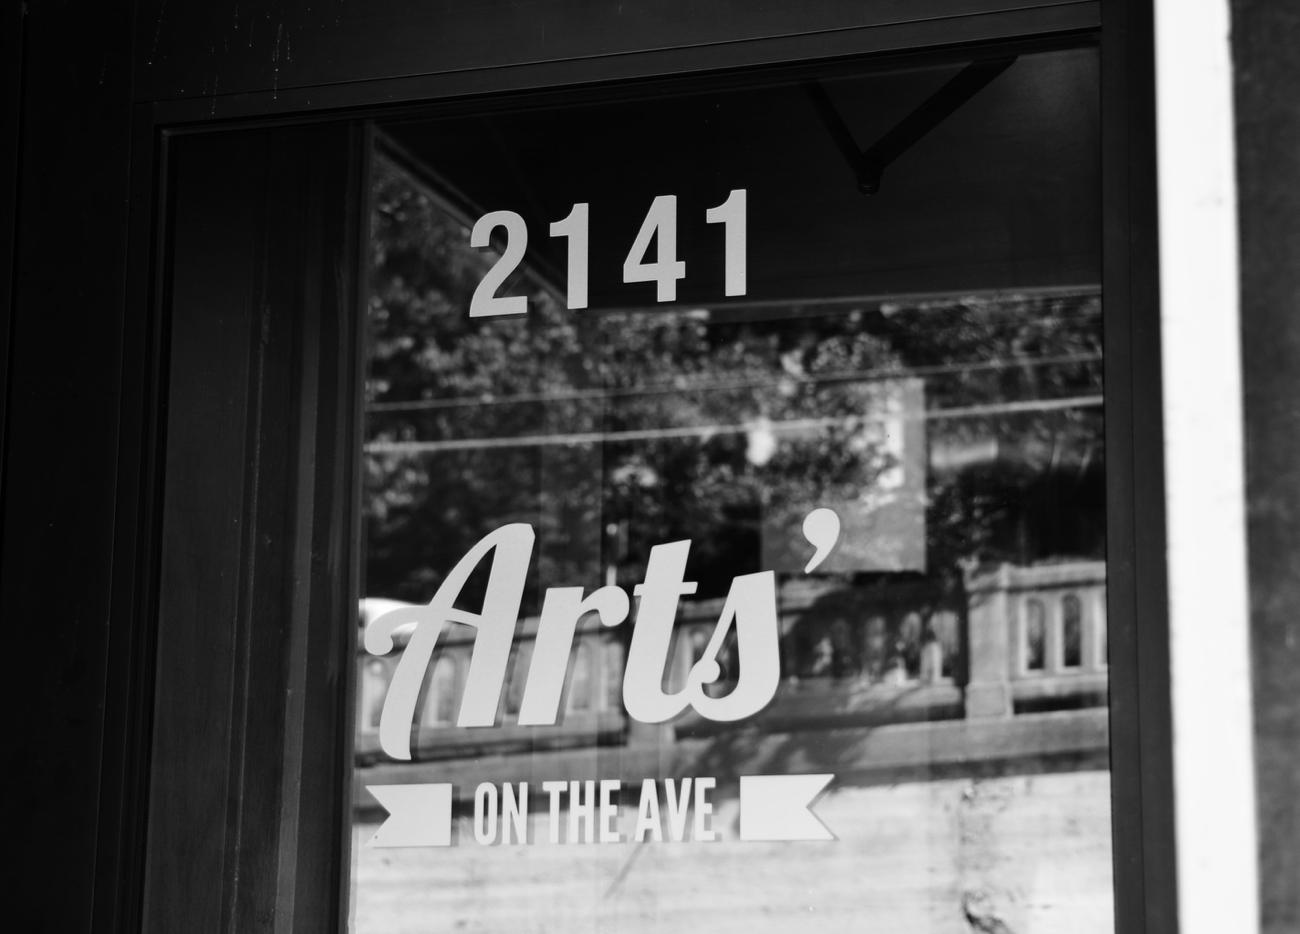 Arts' on the Ave is a new bar, with a special focus on arts & music, located in Brighton. It occupies the former Rake's End space, for those who recall its prior life. ADDRESS: 2141 Central Ave (45214) / Image: Leah Zipperstein, Cincinnati Refined // Published: 6.3.18